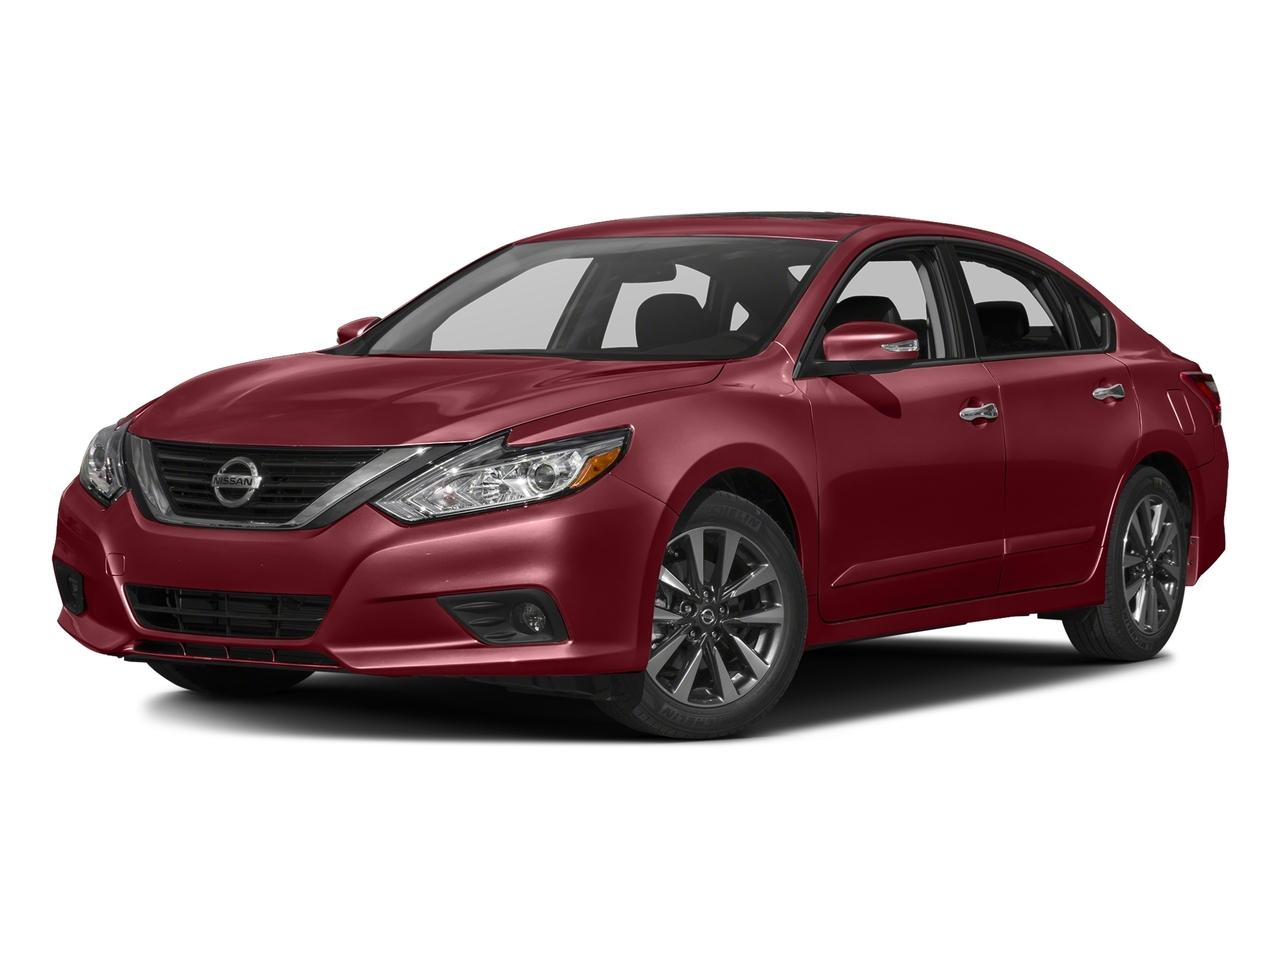 2016 Nissan Altima Vehicle Photo in Trevose, PA 19053-4984